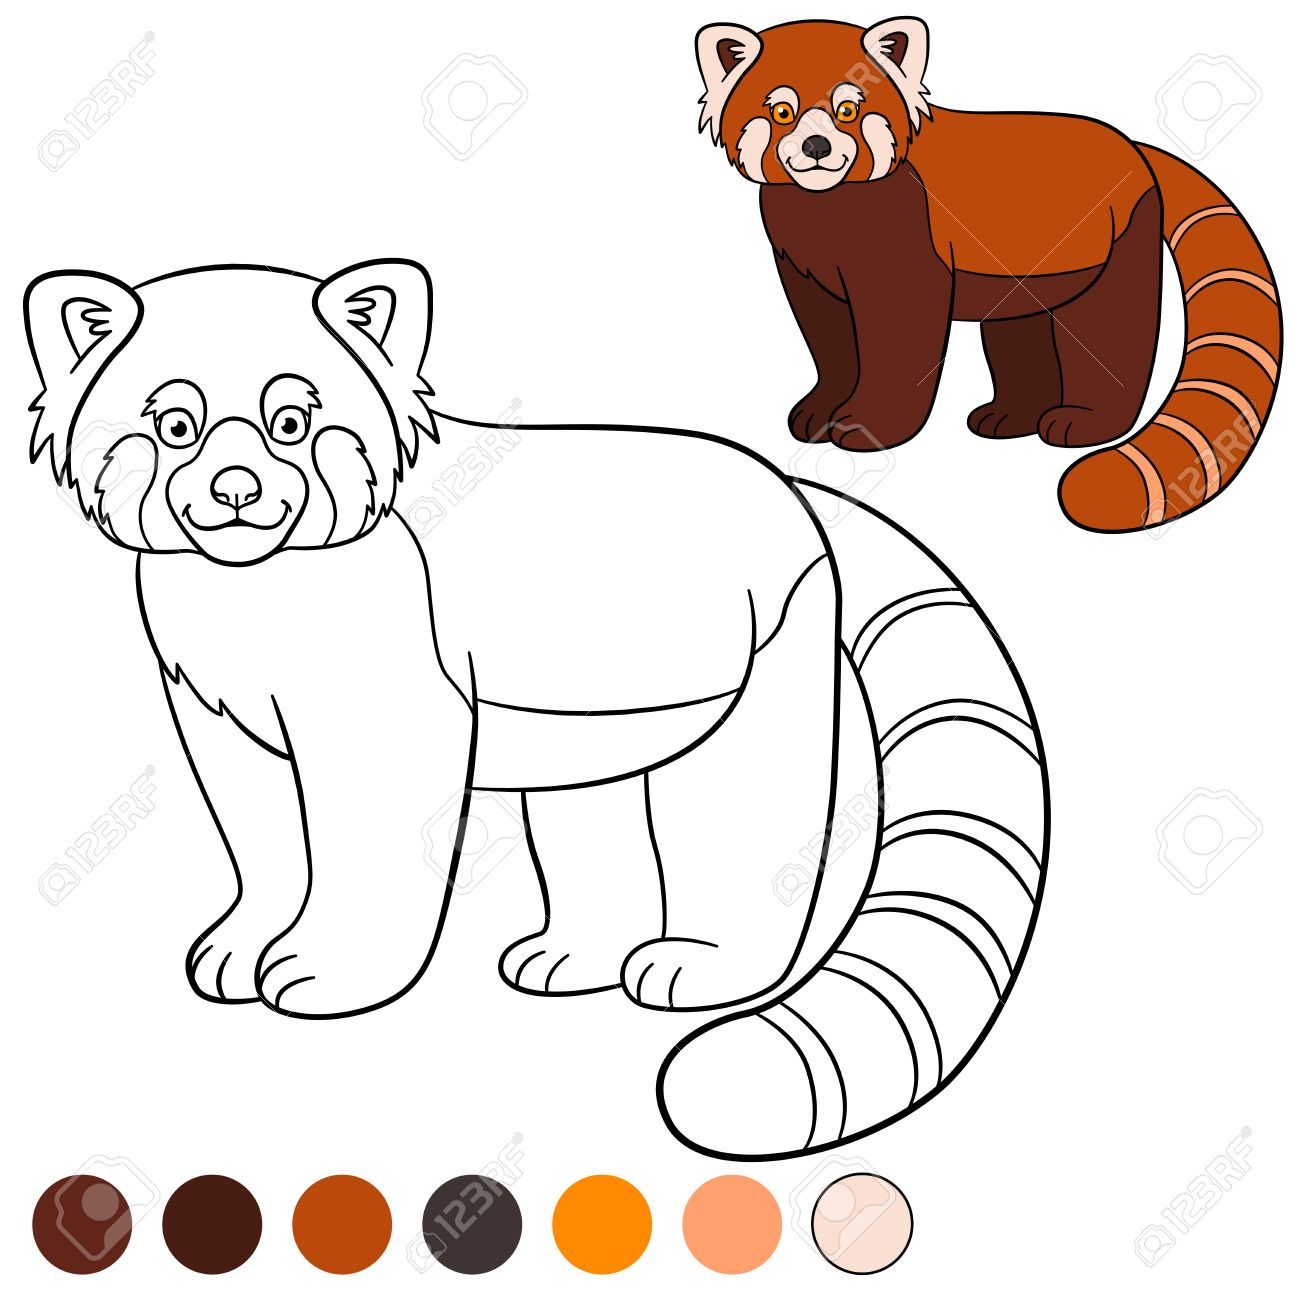 coloring pages bears images on adult coloring page anti stress ...